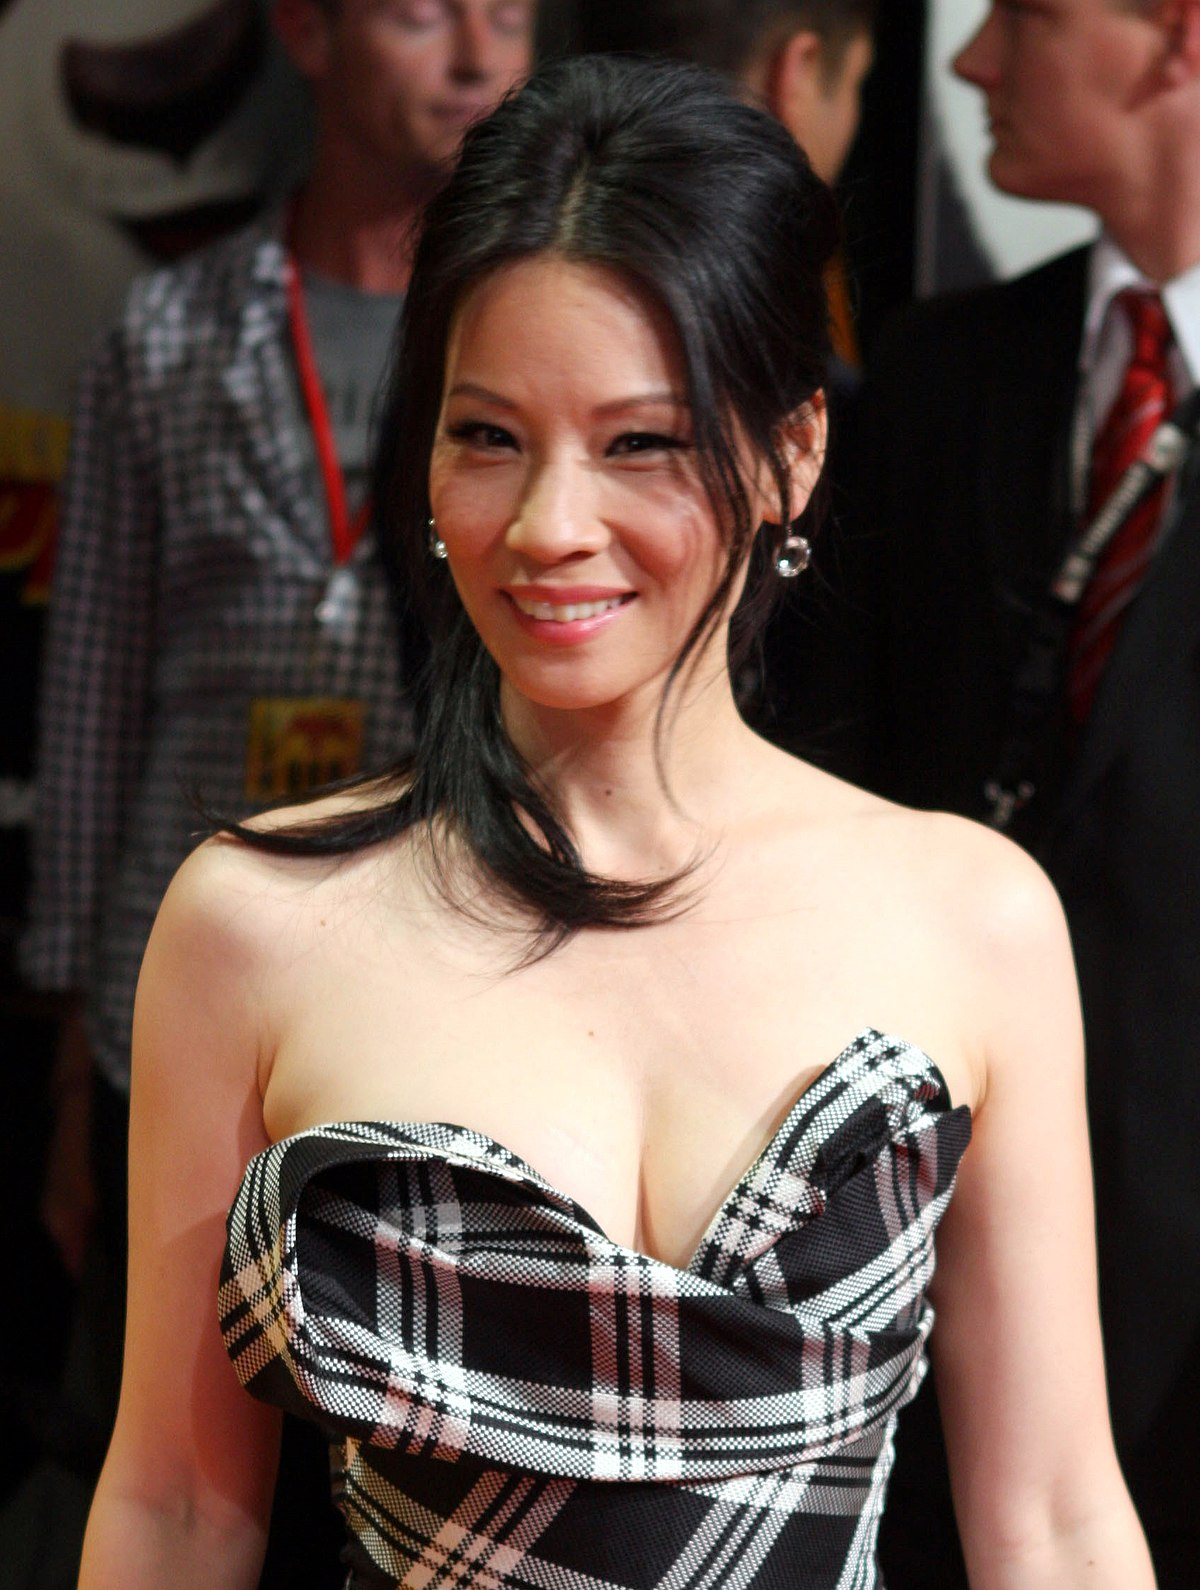 Lucy Liu - Simple English Wikipedia, the free encyclopedia